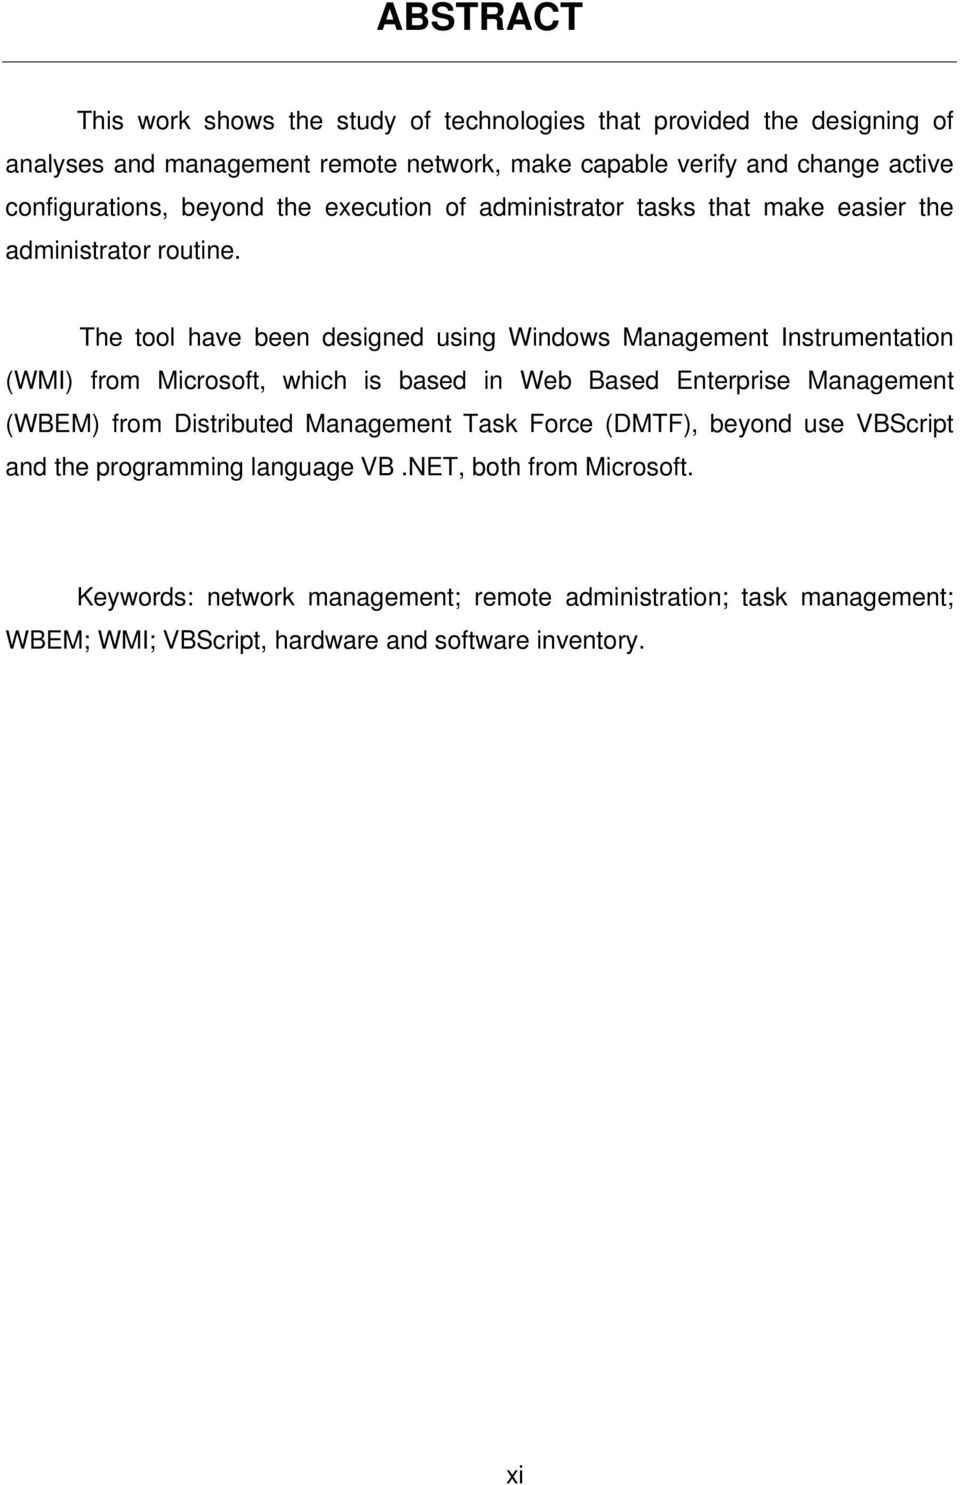 The tool have been designed using Windows Management Instrumentation (WMI) from Microsoft, which is based in Web Based Enterprise Management (WBEM) from Distributed